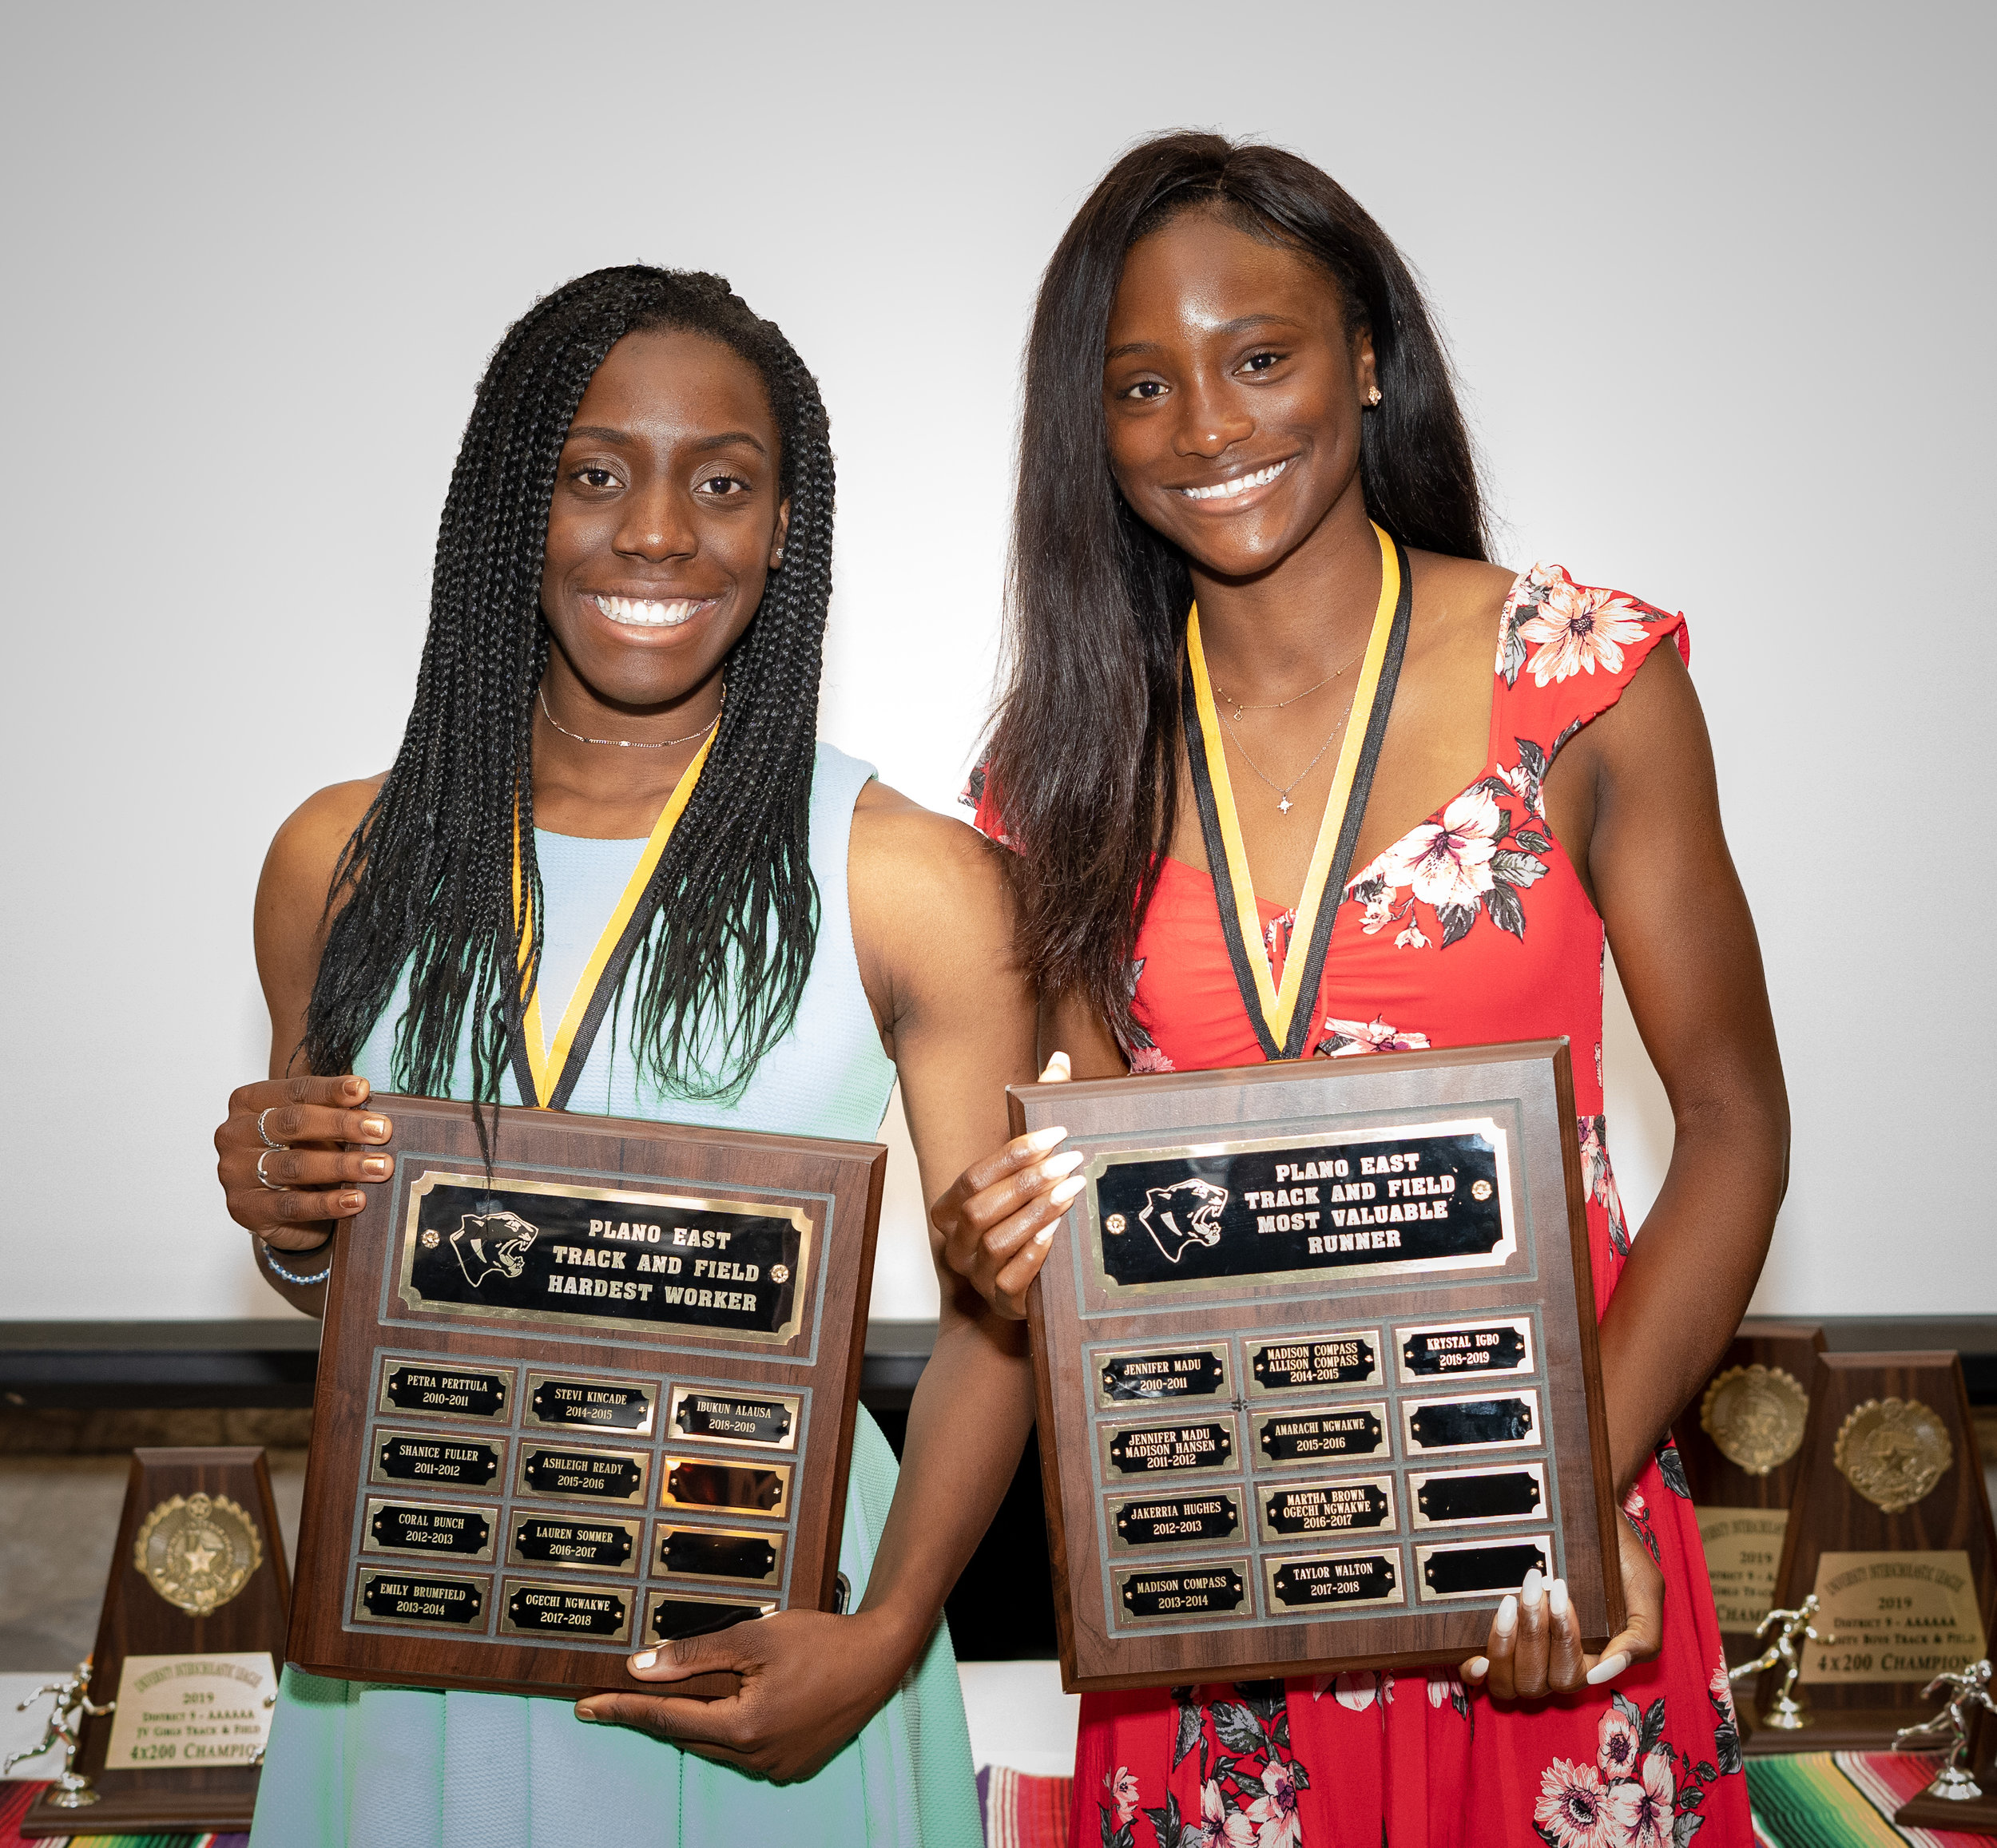 Ibukun Alausa (Hardest Worker) and Krystal Igbo (Most Valuable Runner) are presented with awards.